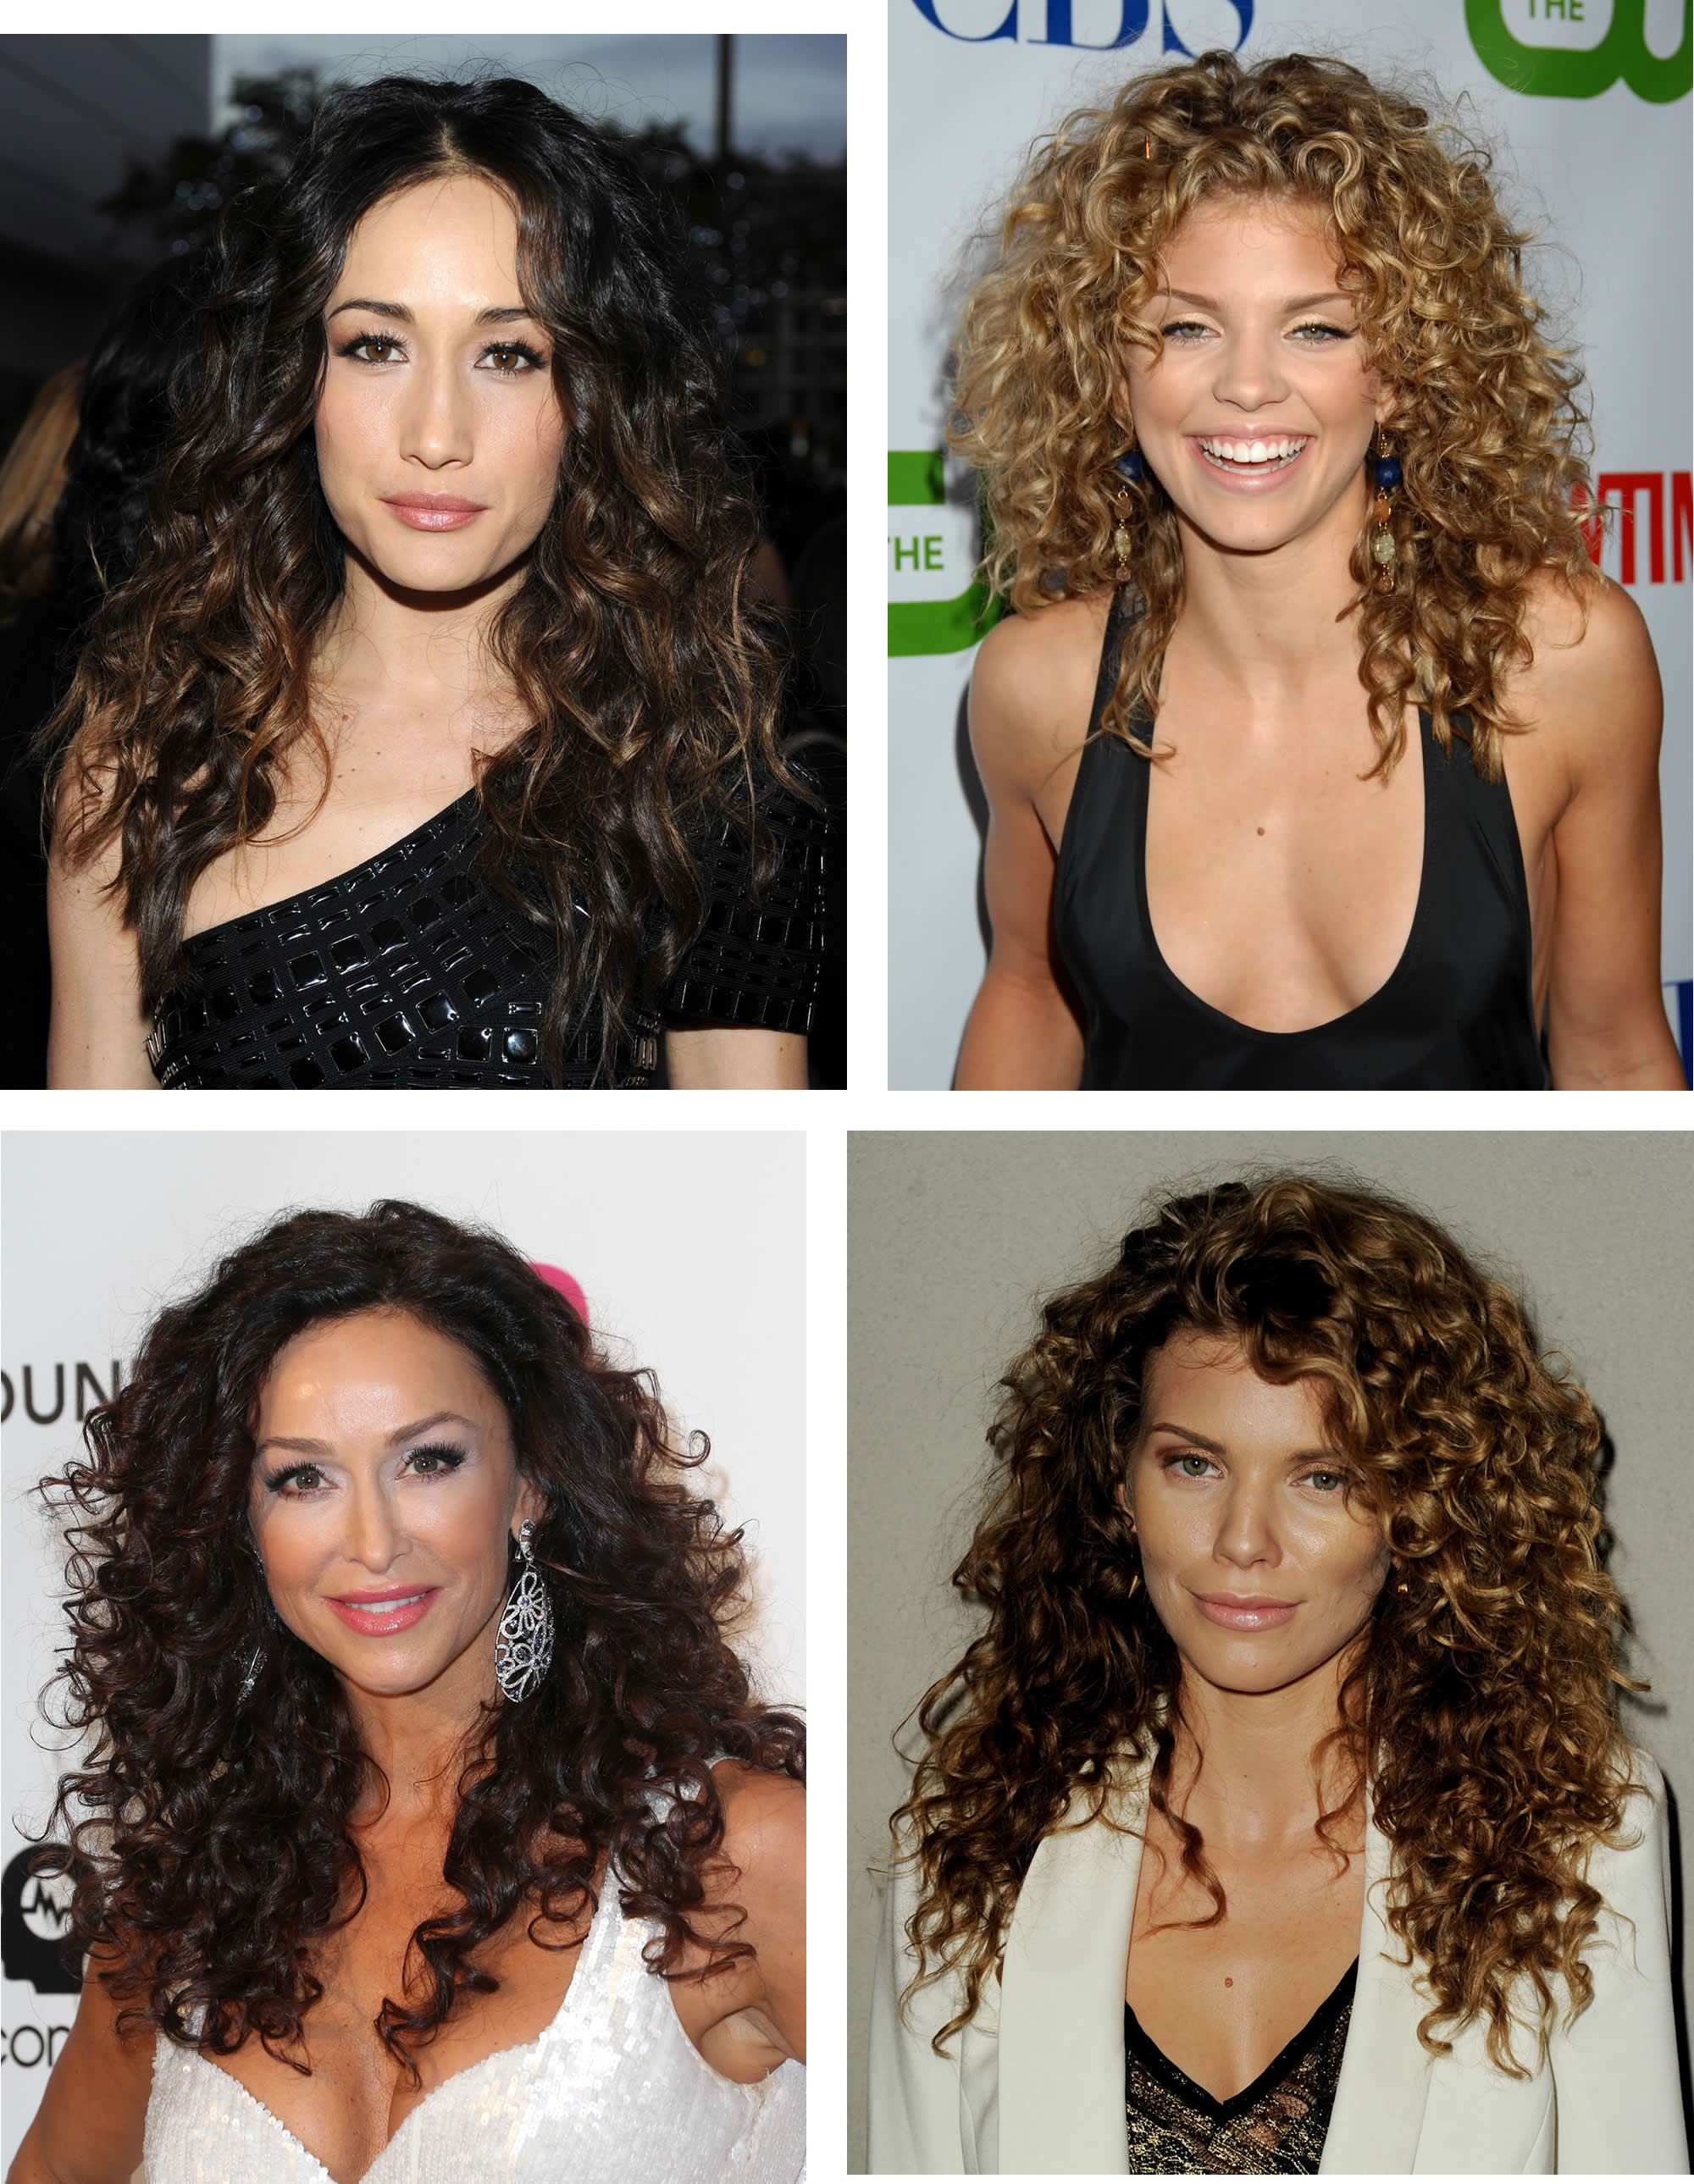 Hairstyles For Long Curly Hair Your Beauty 411 Curly Hair Styles Naturally Curly Hair Styles Long Curly Hair